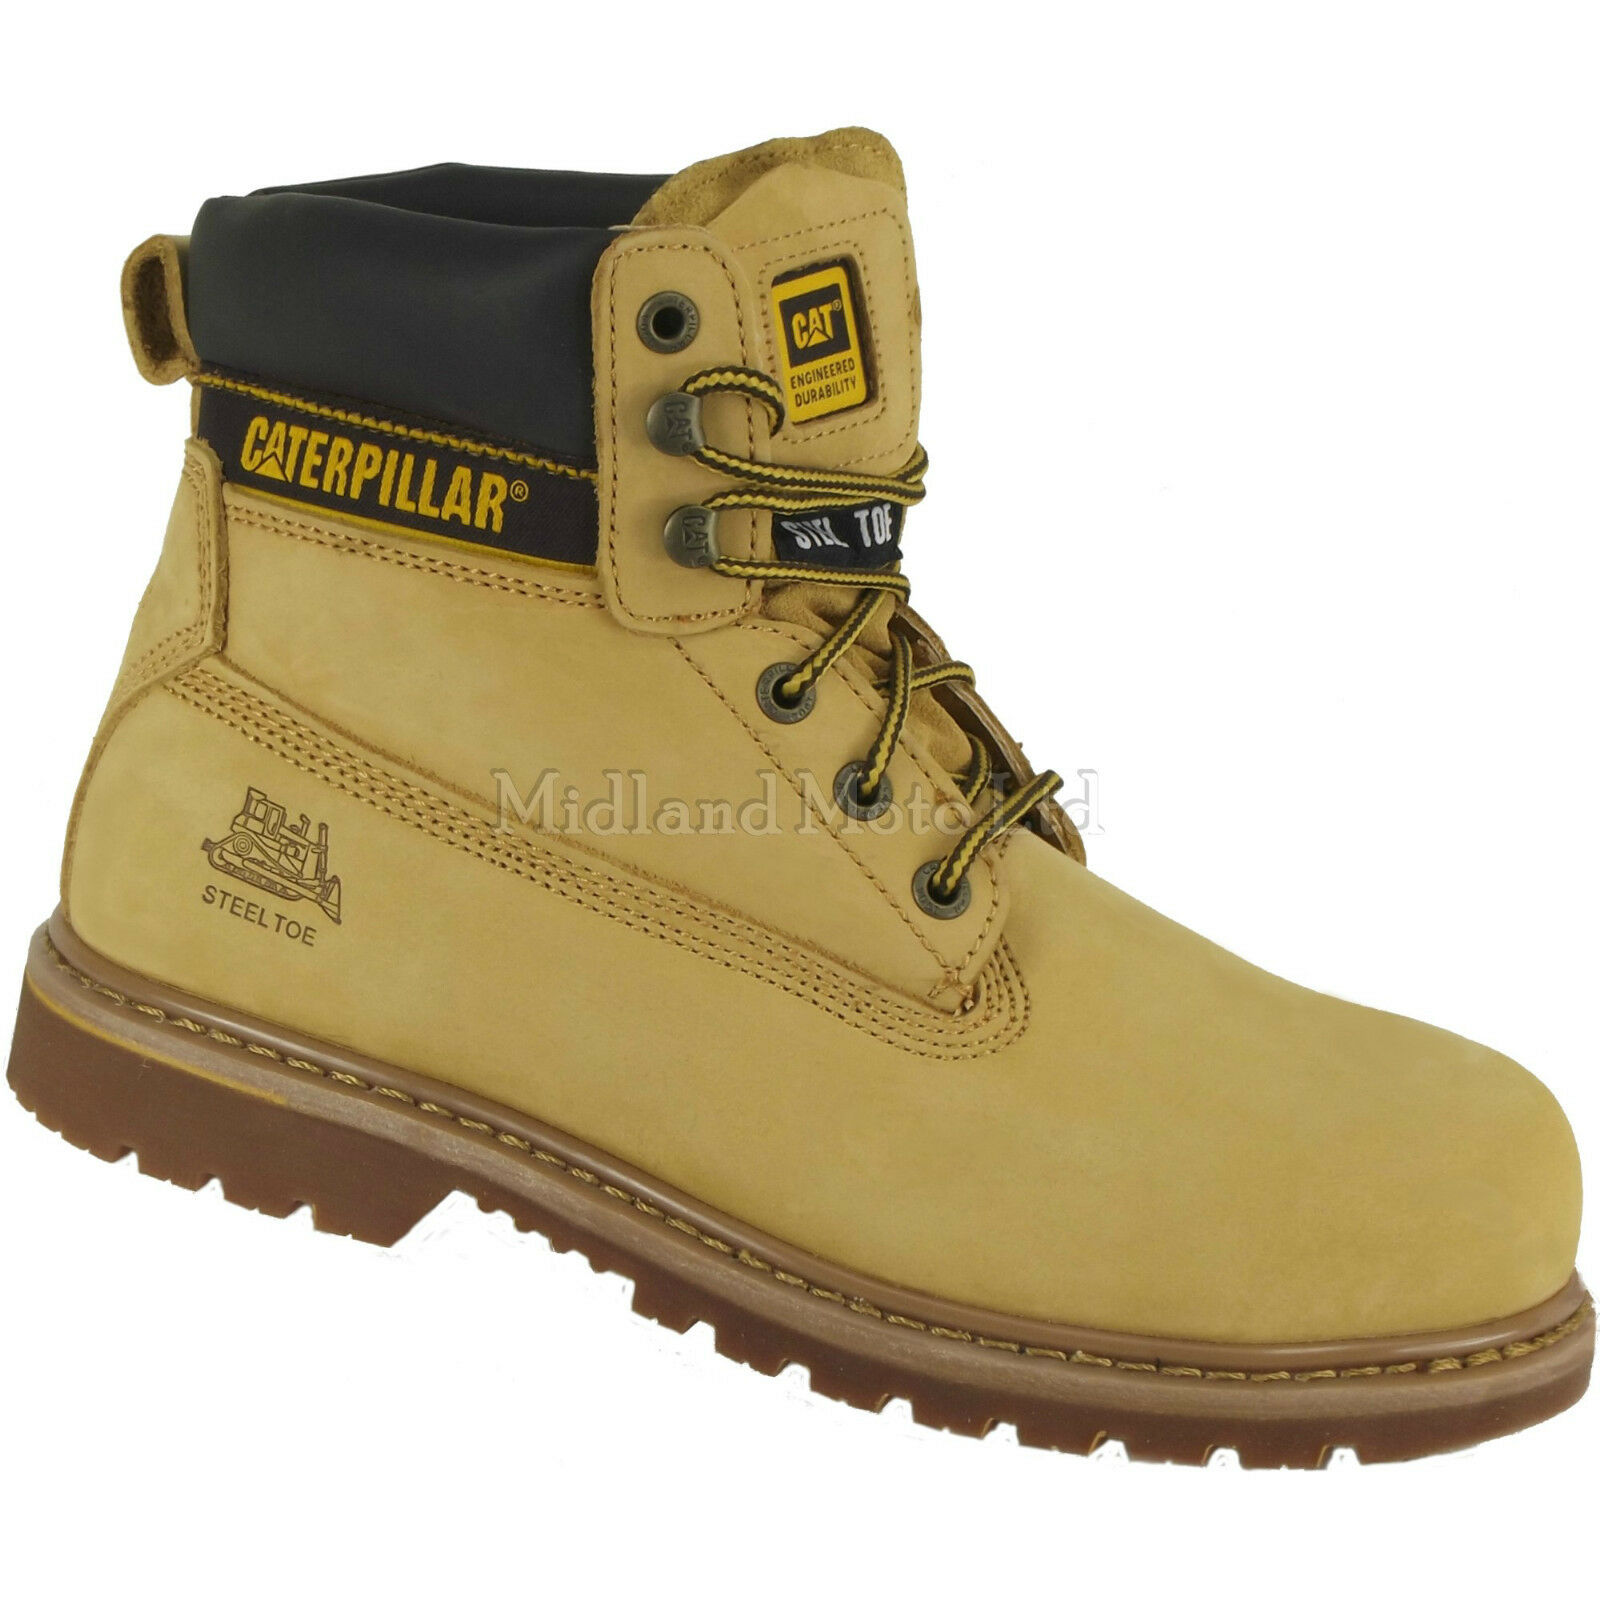 Caterpillar Holton Safety SB Steel Toe Cap Safety Holton Honey Nubuck Boots, CAT, Shoes 9ec93e